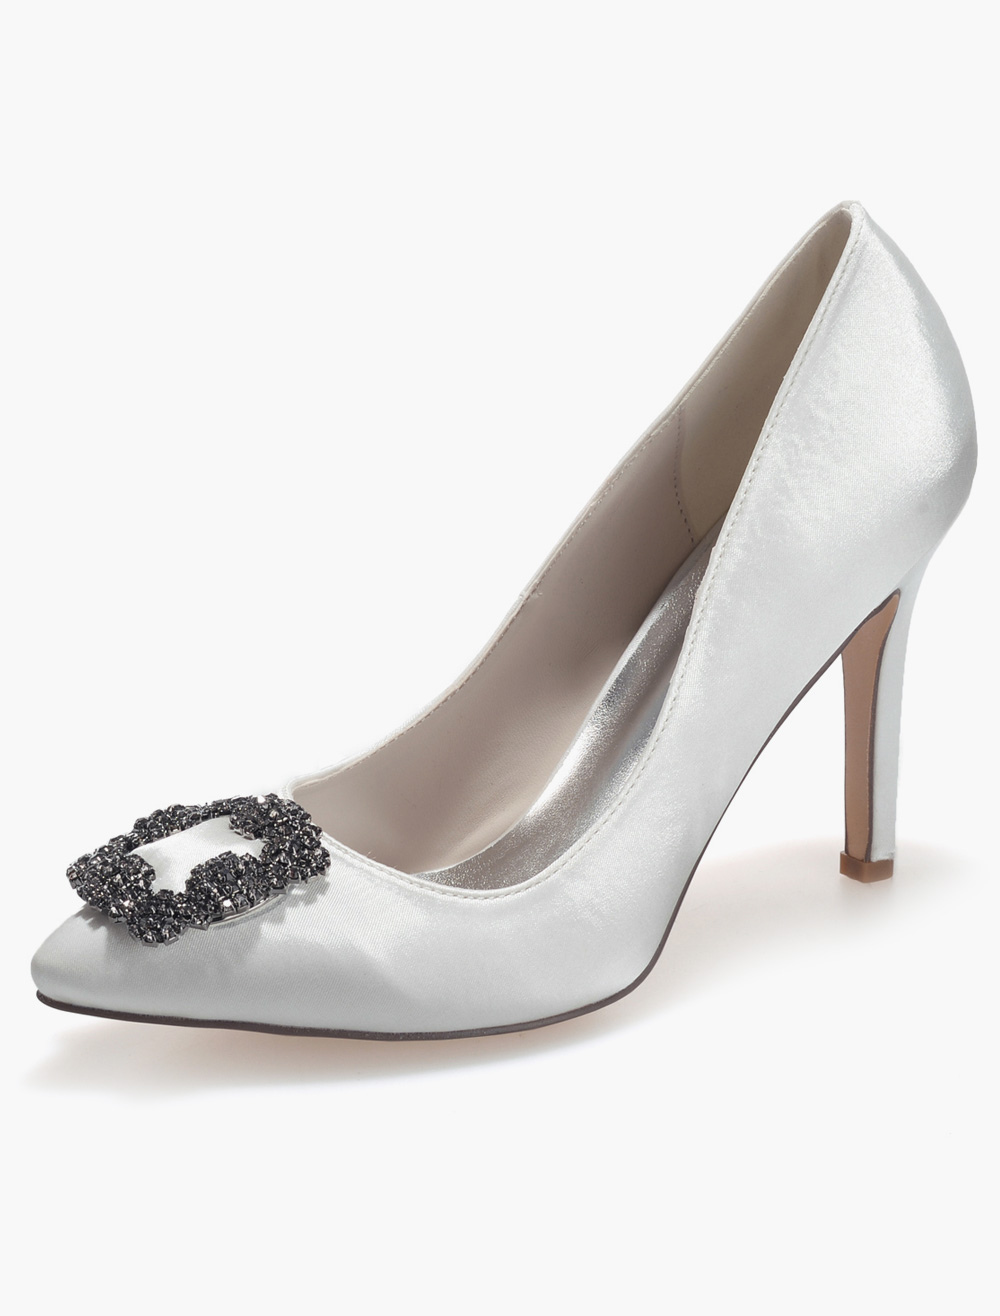 Buy Glamour Rhinestones Pointed Toe Satin Pumps For Bride for $49.49 in Milanoo store